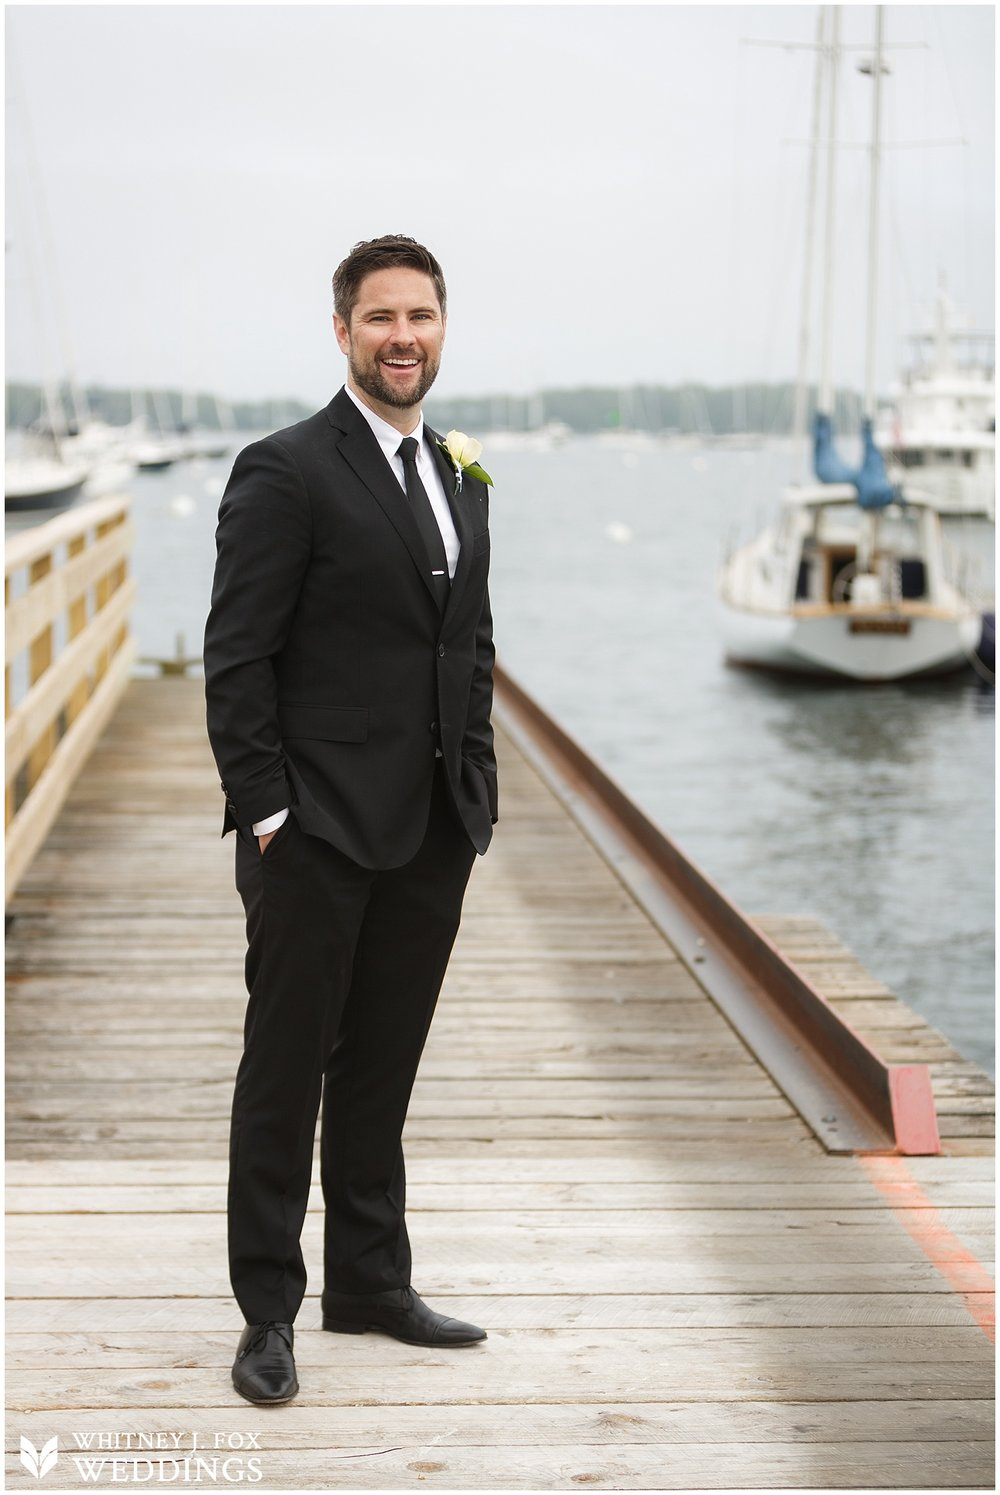 formal_seaside_summer_wedding_dockside_grill_falmouth_maine_photographer_whitney_j_fox_weddings_55.JPG